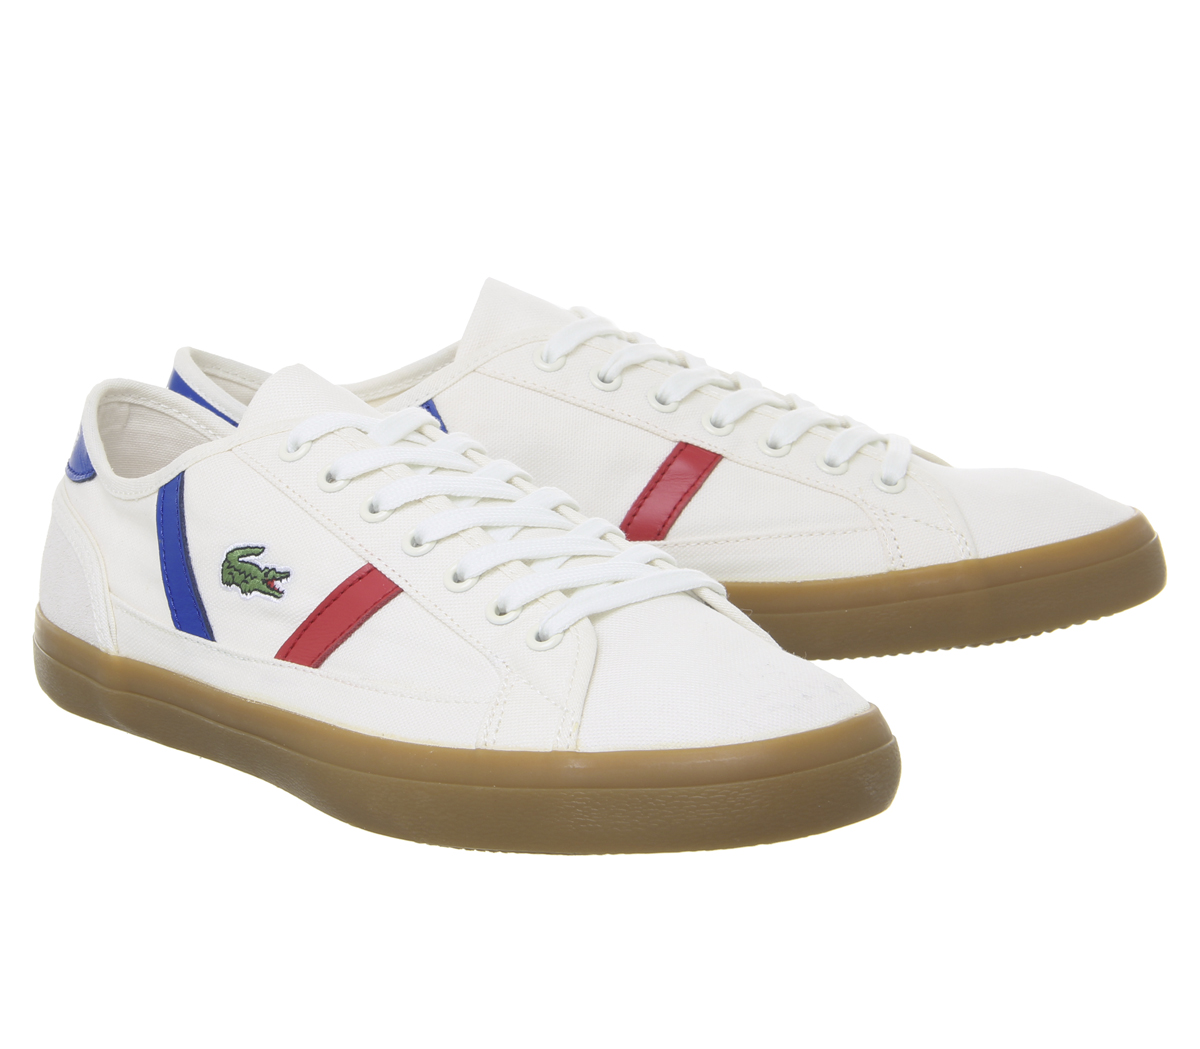 5a4bbd5934dd Lacoste-Sideline-Trainers-Off-White-Gum-Trainers-Shoes thumbnail